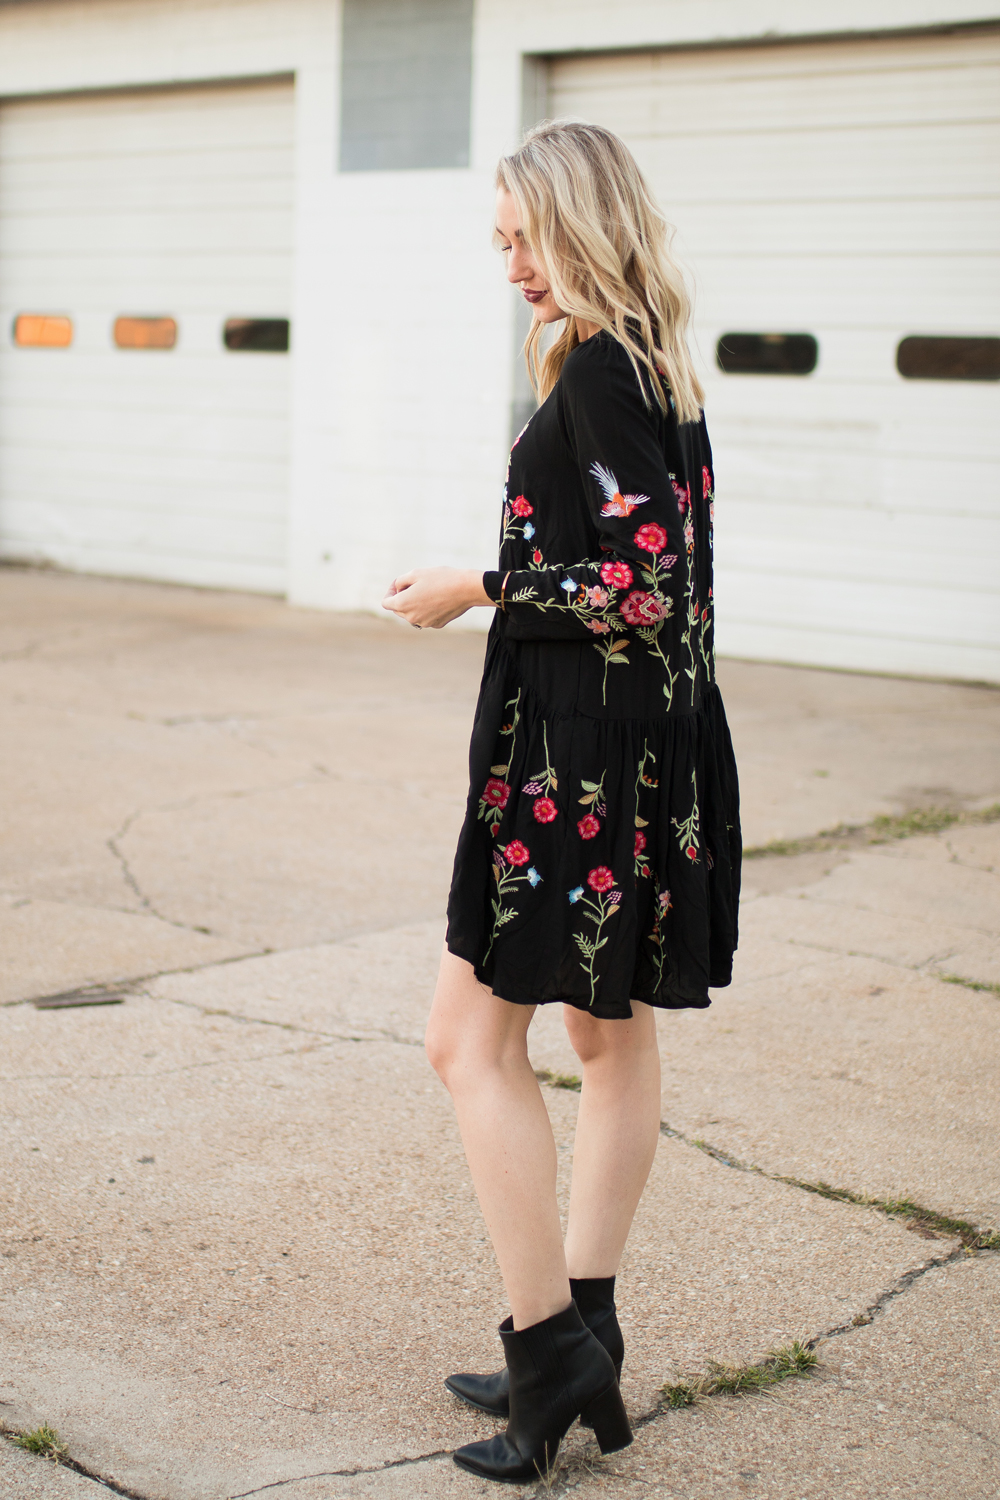 Fall boho dress with floral embroidery